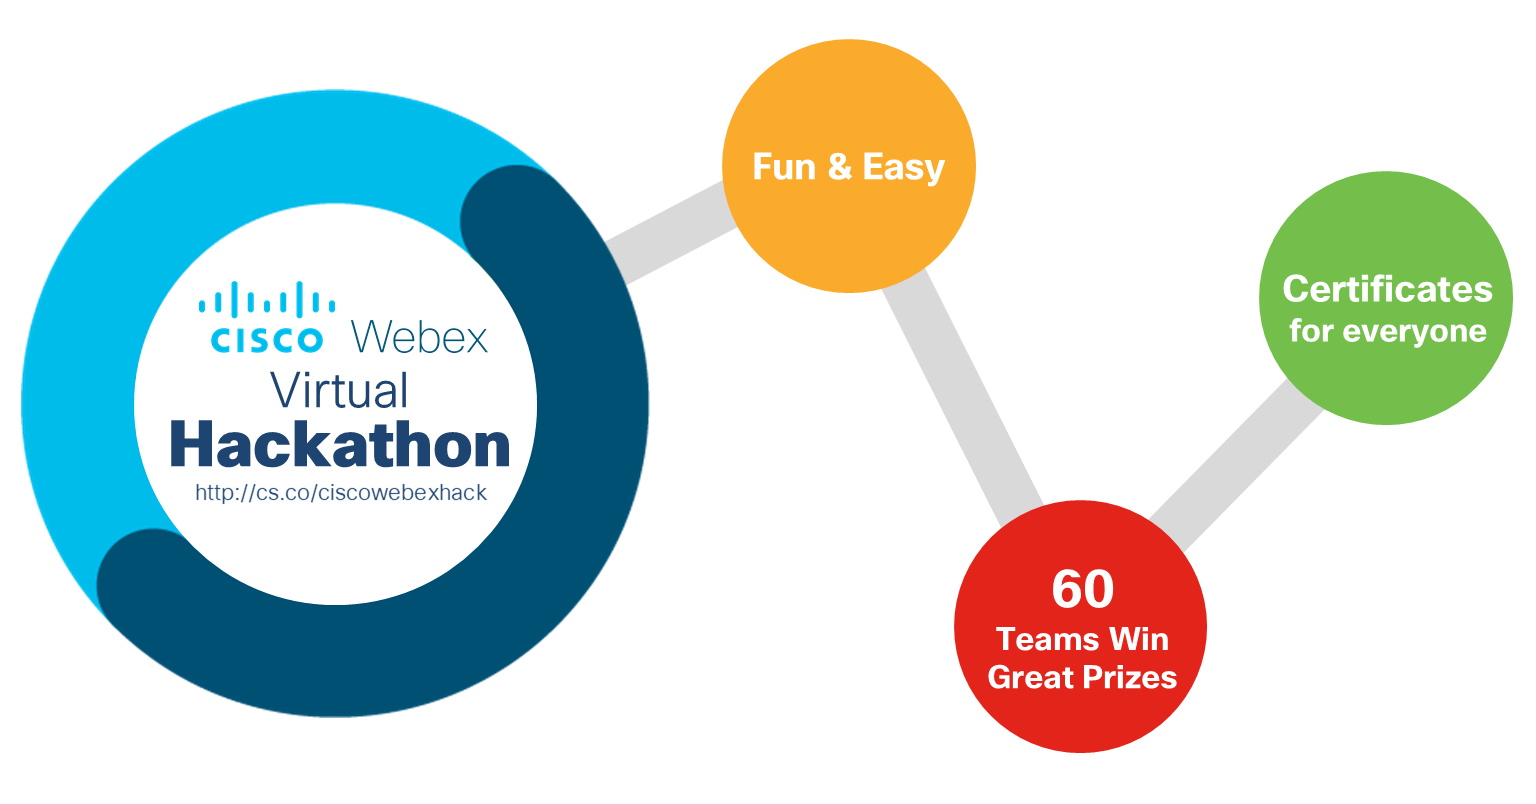 Cisco Webex Virtual Hackathon